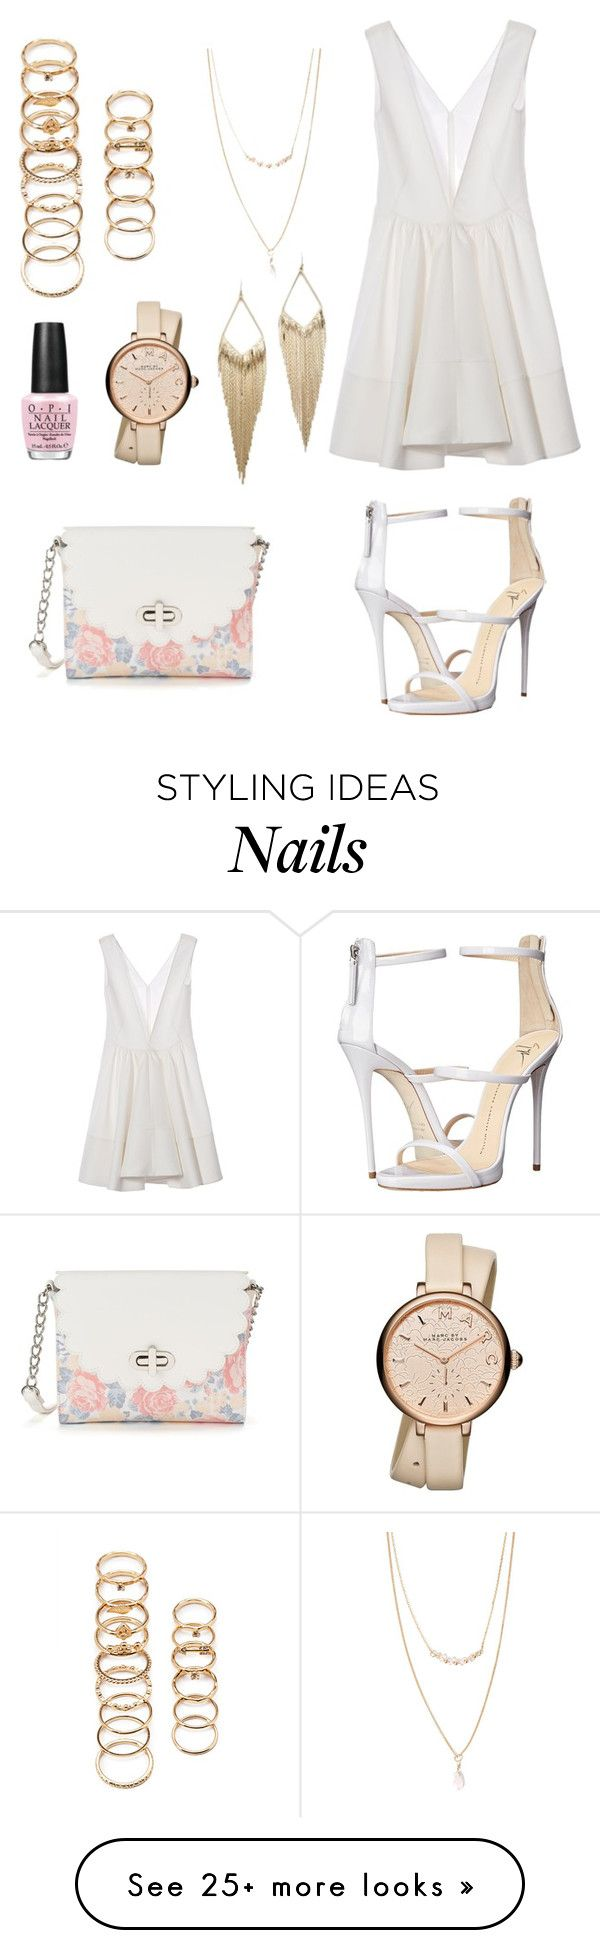 """""""Fly S*** Only"""" by anishagarner on Polyvore featuring Marni, Forever 21, Candie's, OPI, Marc by Marc Jacobs, Giuseppe Zanotti, Jules Smith, beach and summerdate"""